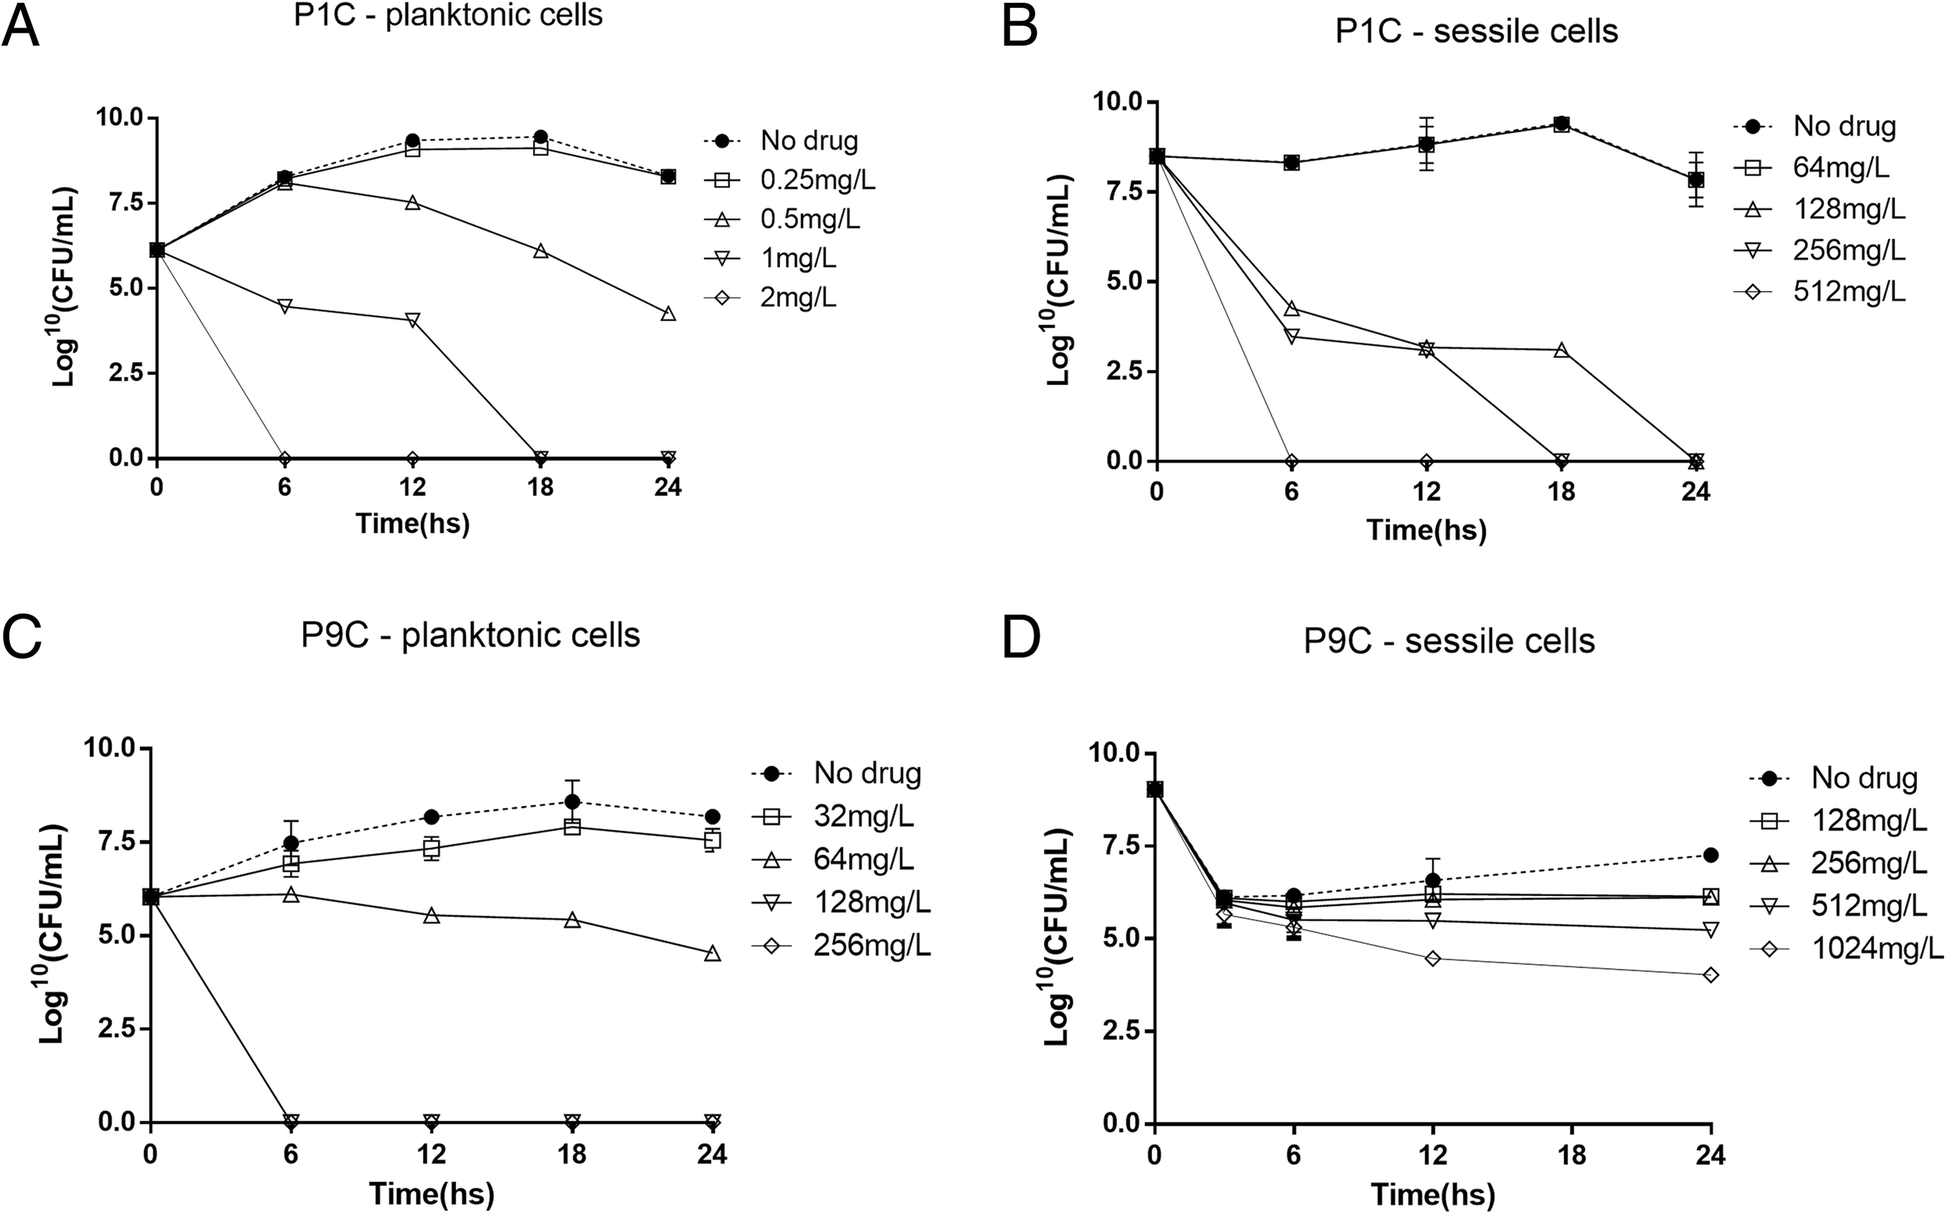 Evaluation of the interaction between polymyxin B and